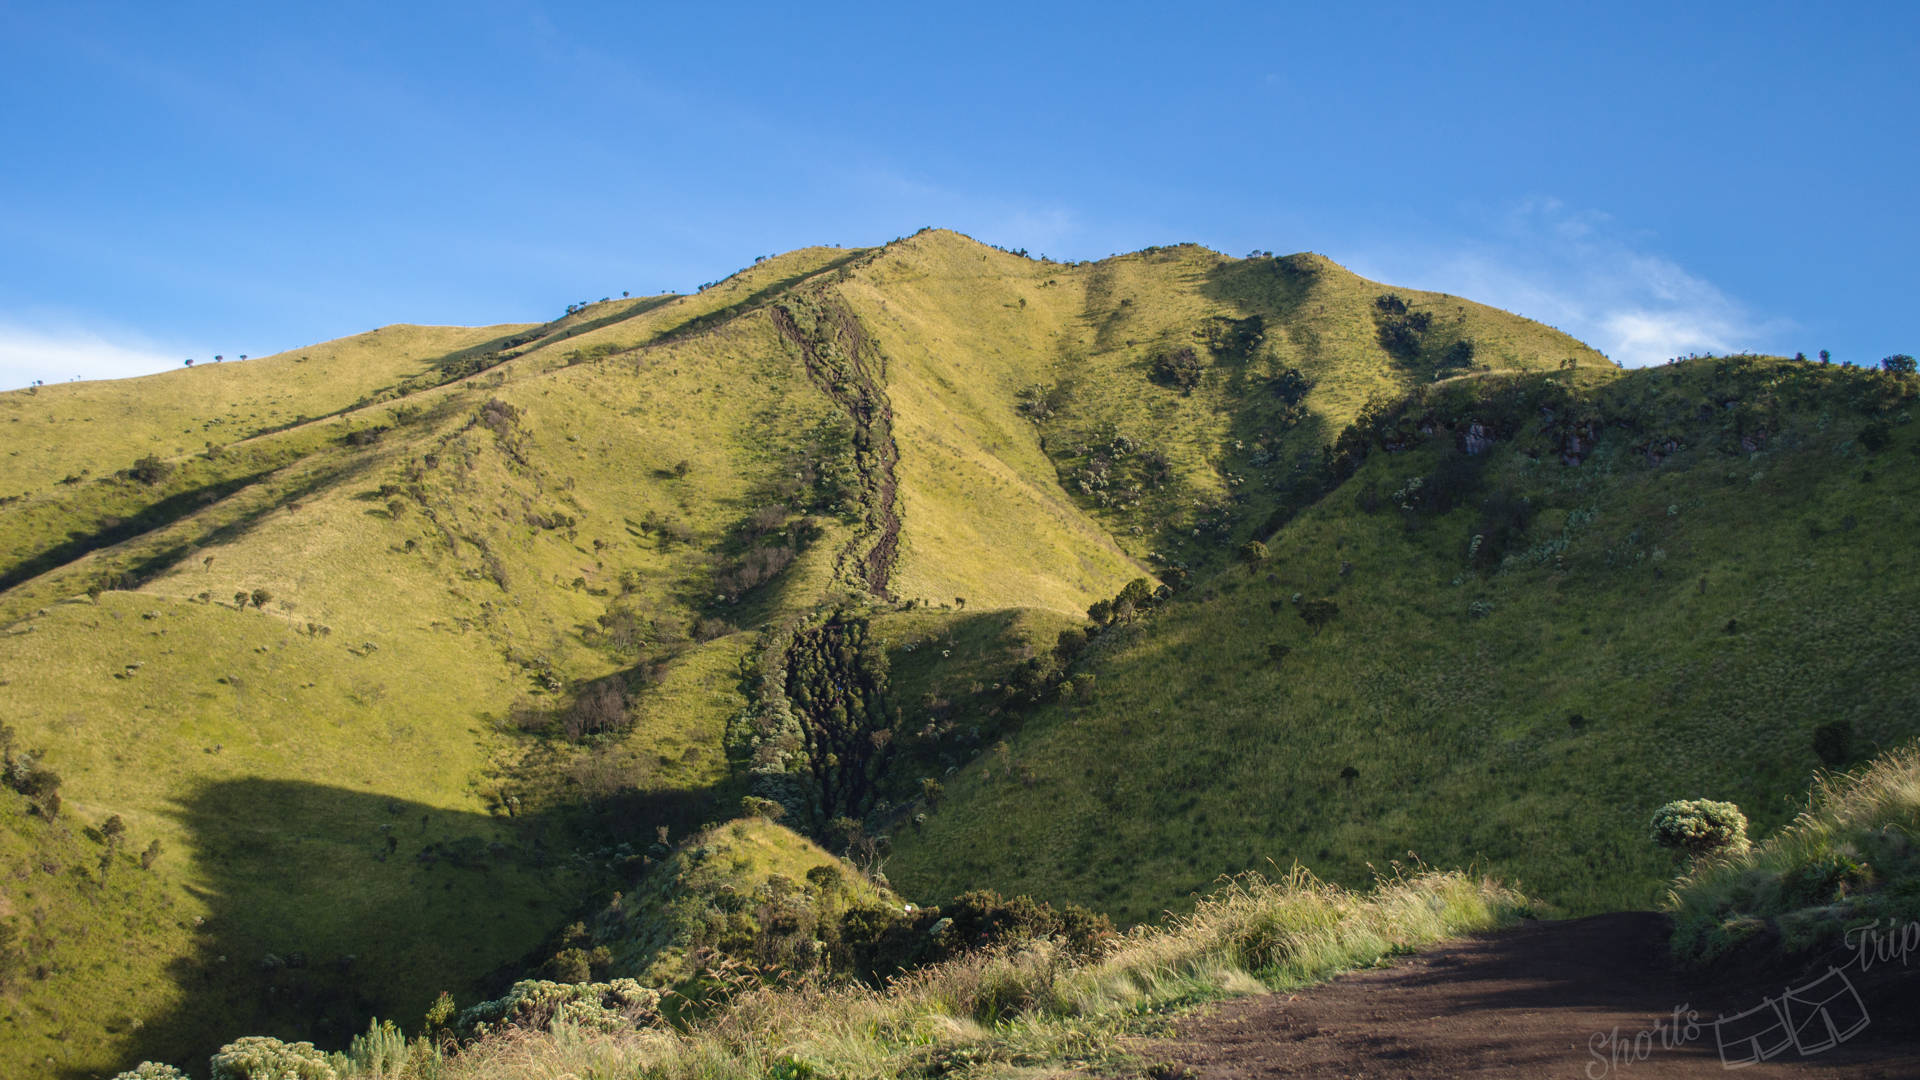 savanah merbabu, savana merbabu, merbabu climb, merbabu hike, merbabu hiking on your own, merbabu